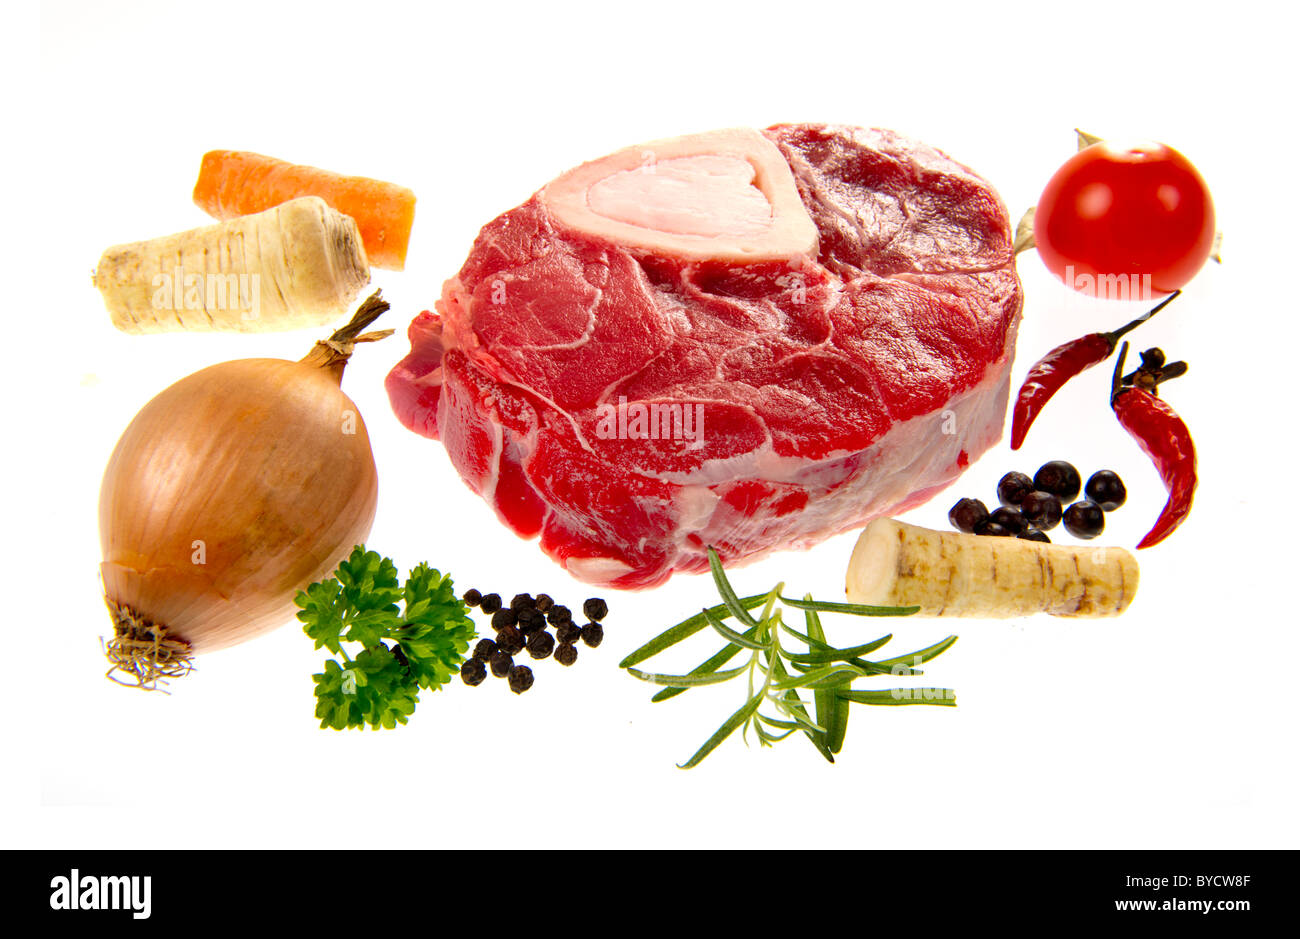 beef meat leg disc for soup boullion cook cooking food fine cuisine ingredients make kitchen produce production - Stock Image